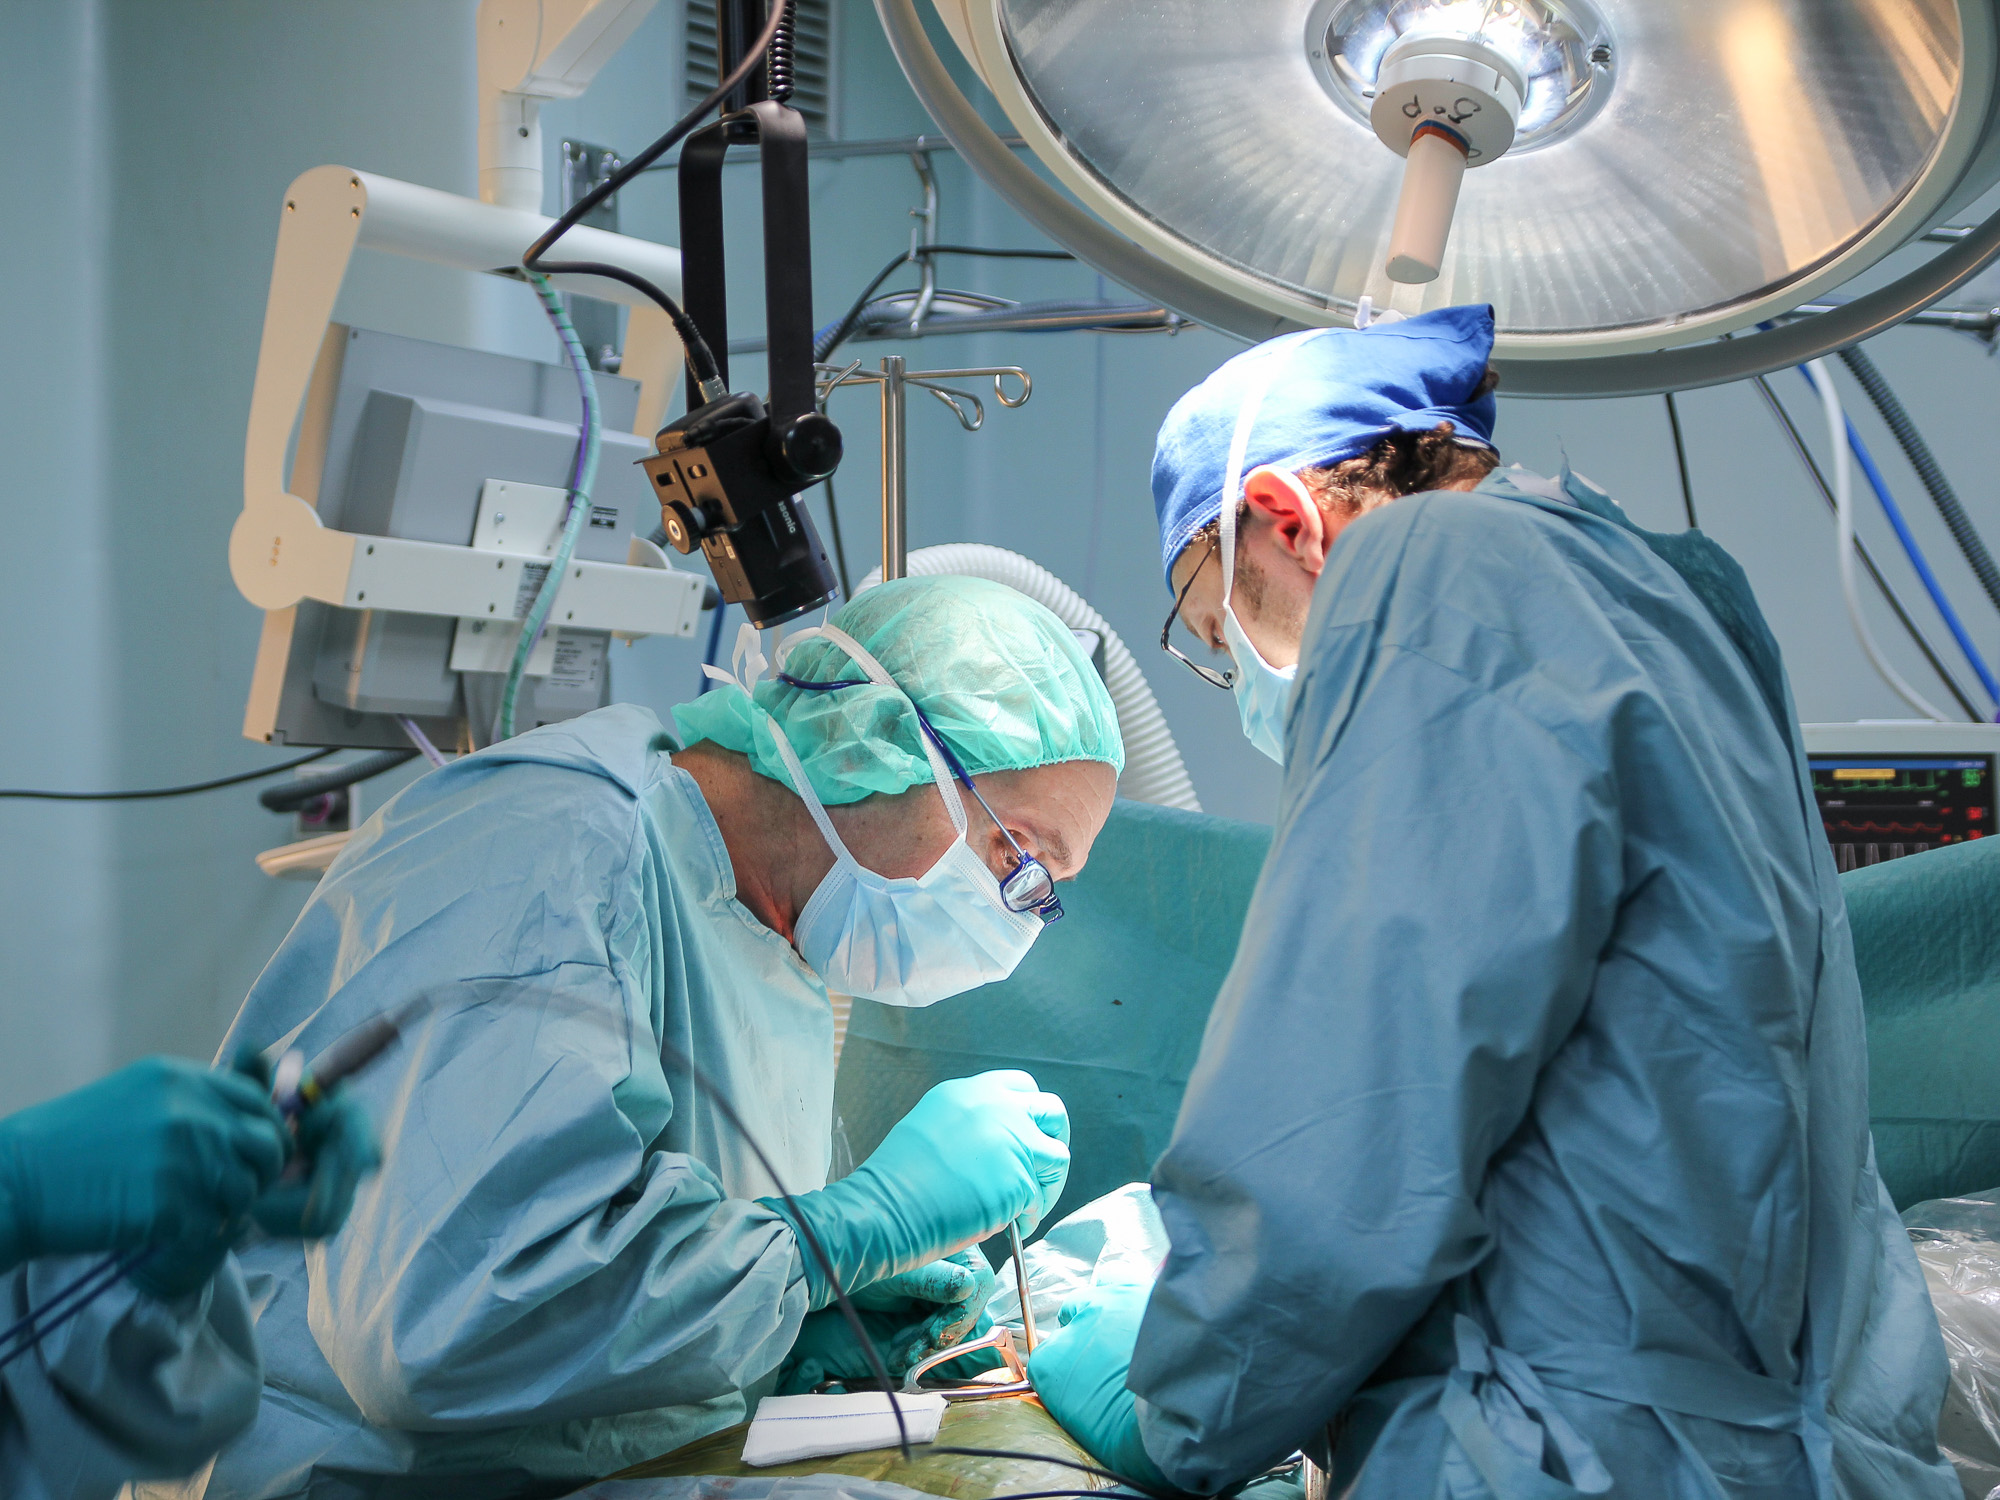 Medical Polecam in the operation theatre